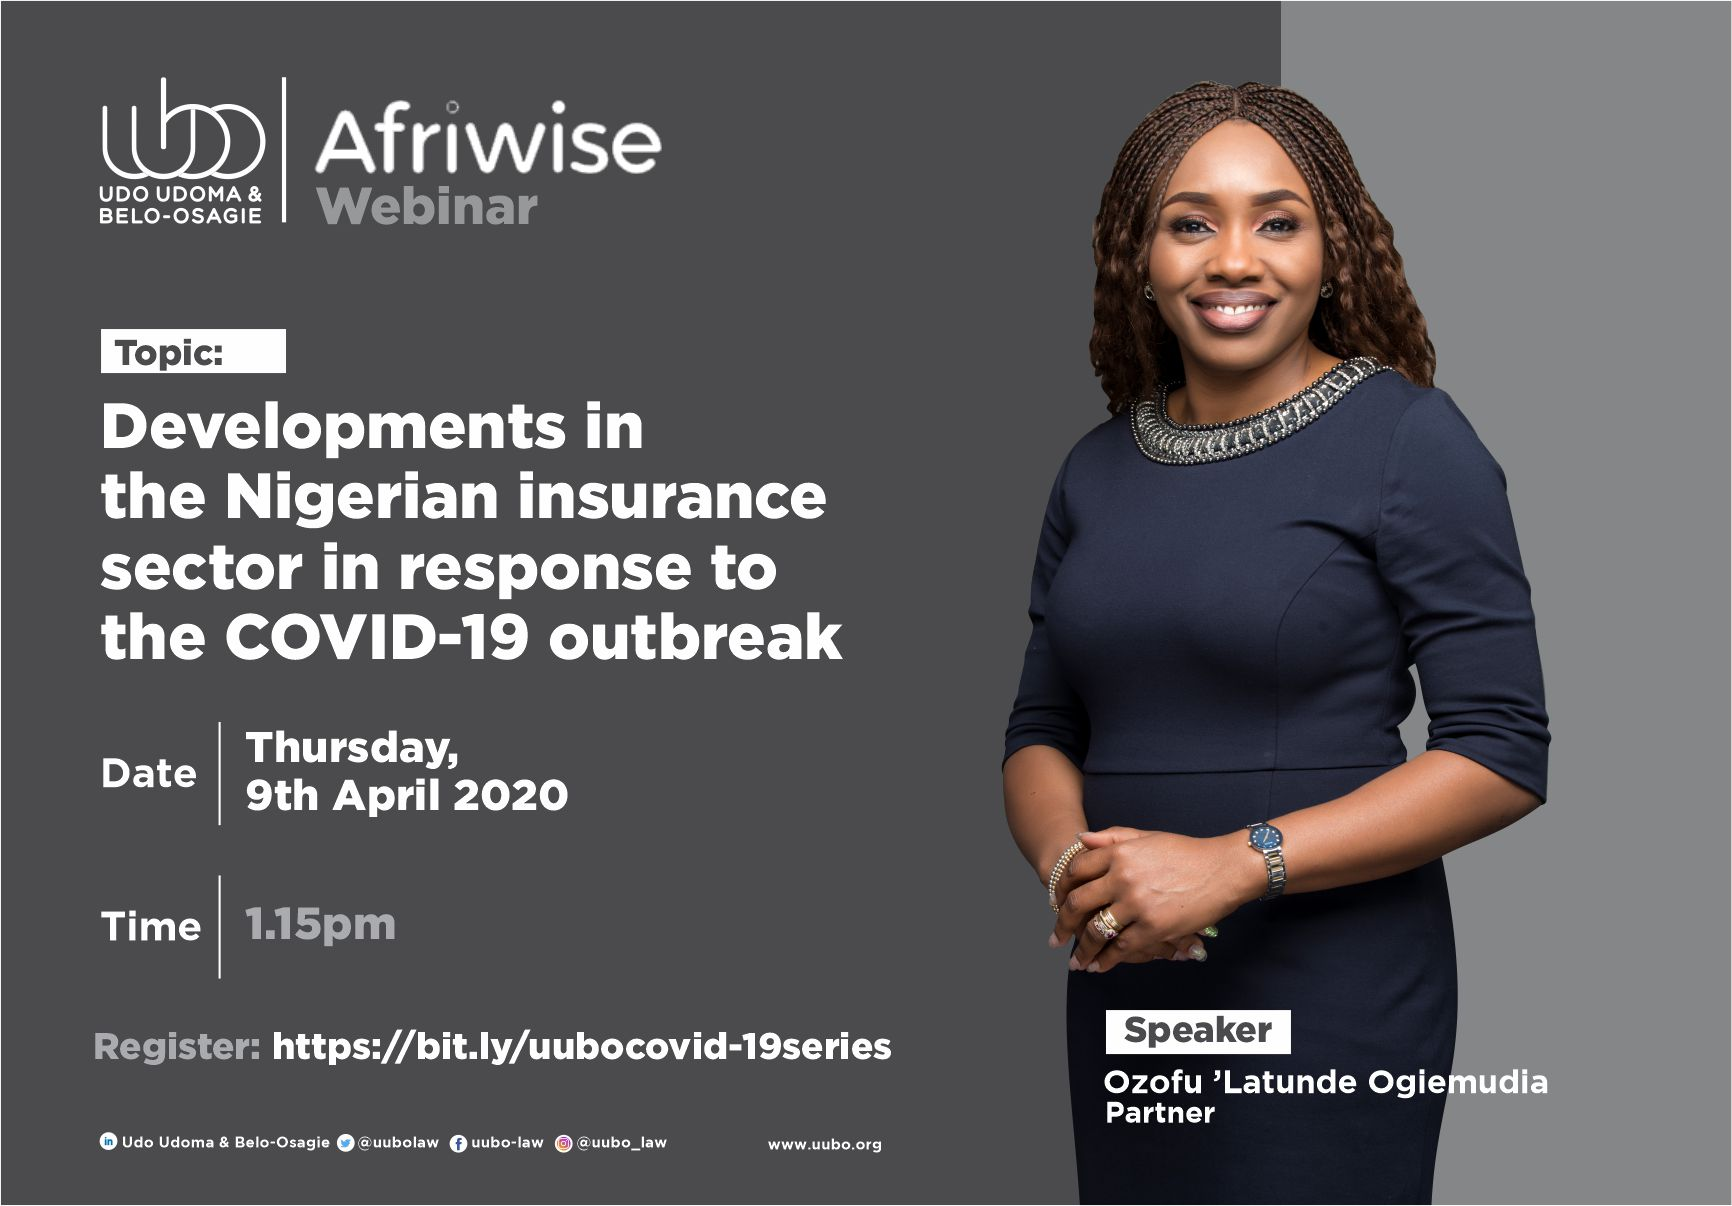 Webinar: Developments in the Nigerian insurance sector in response to the COVID-19 outbreak